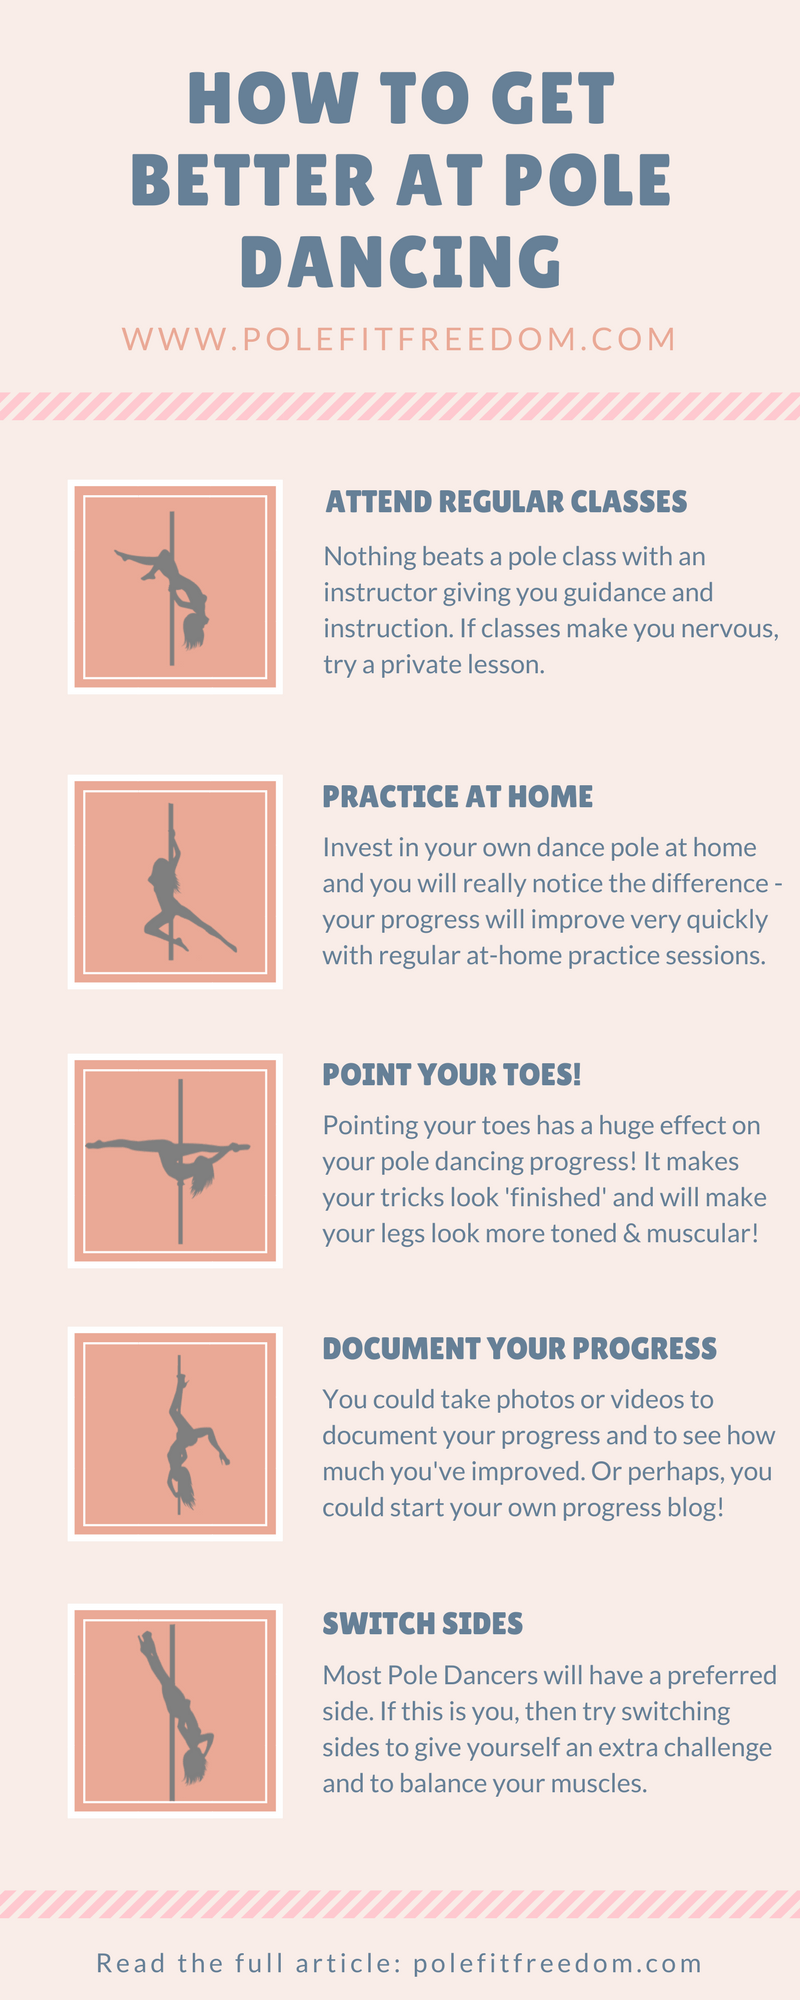 How to get better at pole dancing infographic